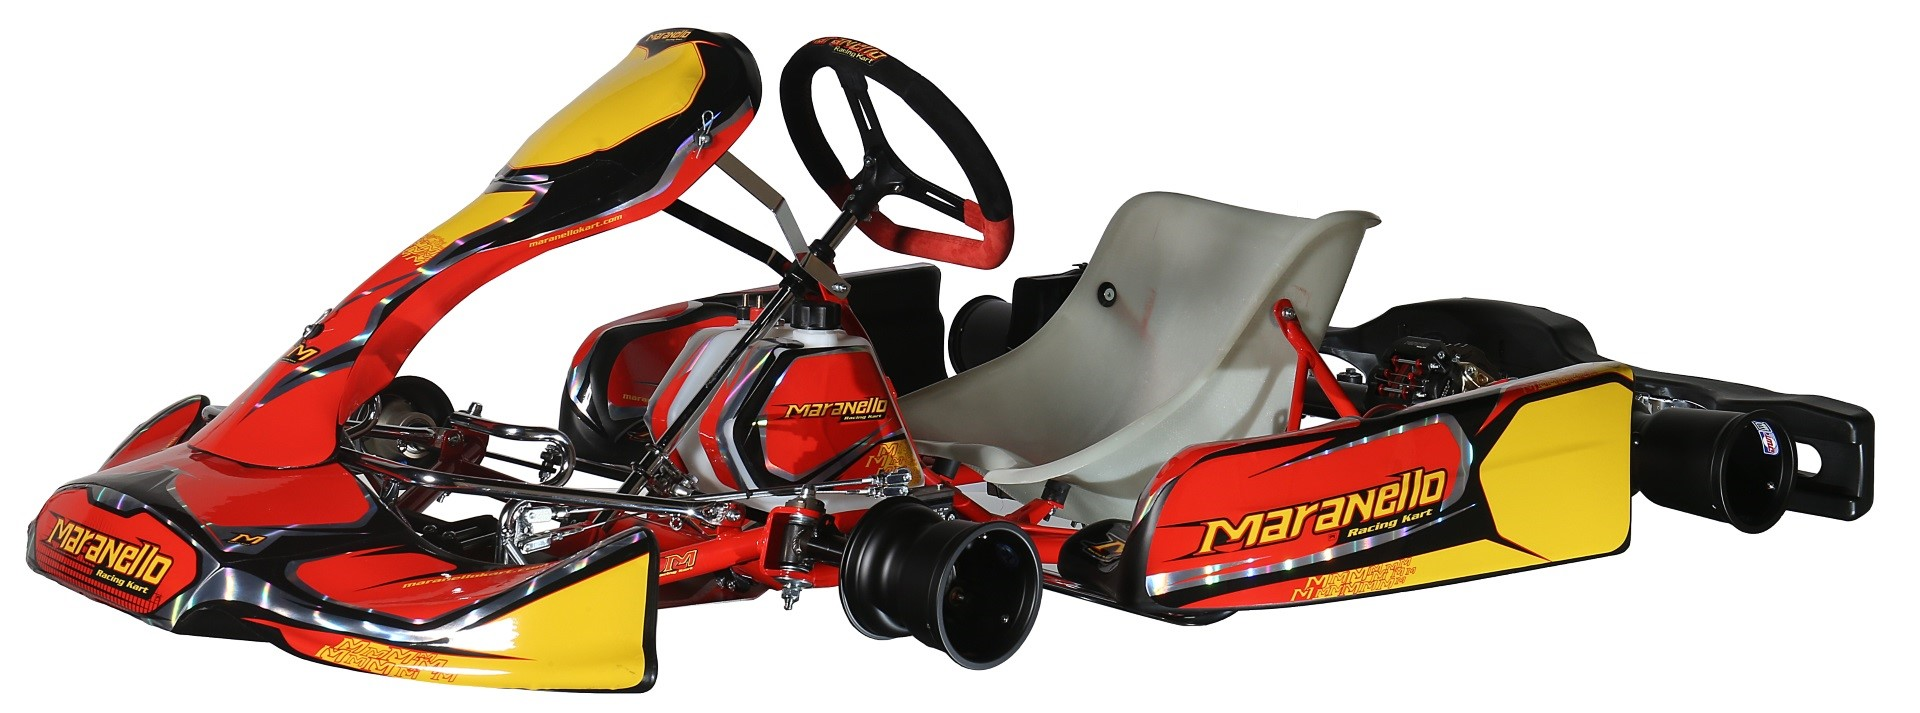 Maranello with Rotax Max 125cc Water cooled engine